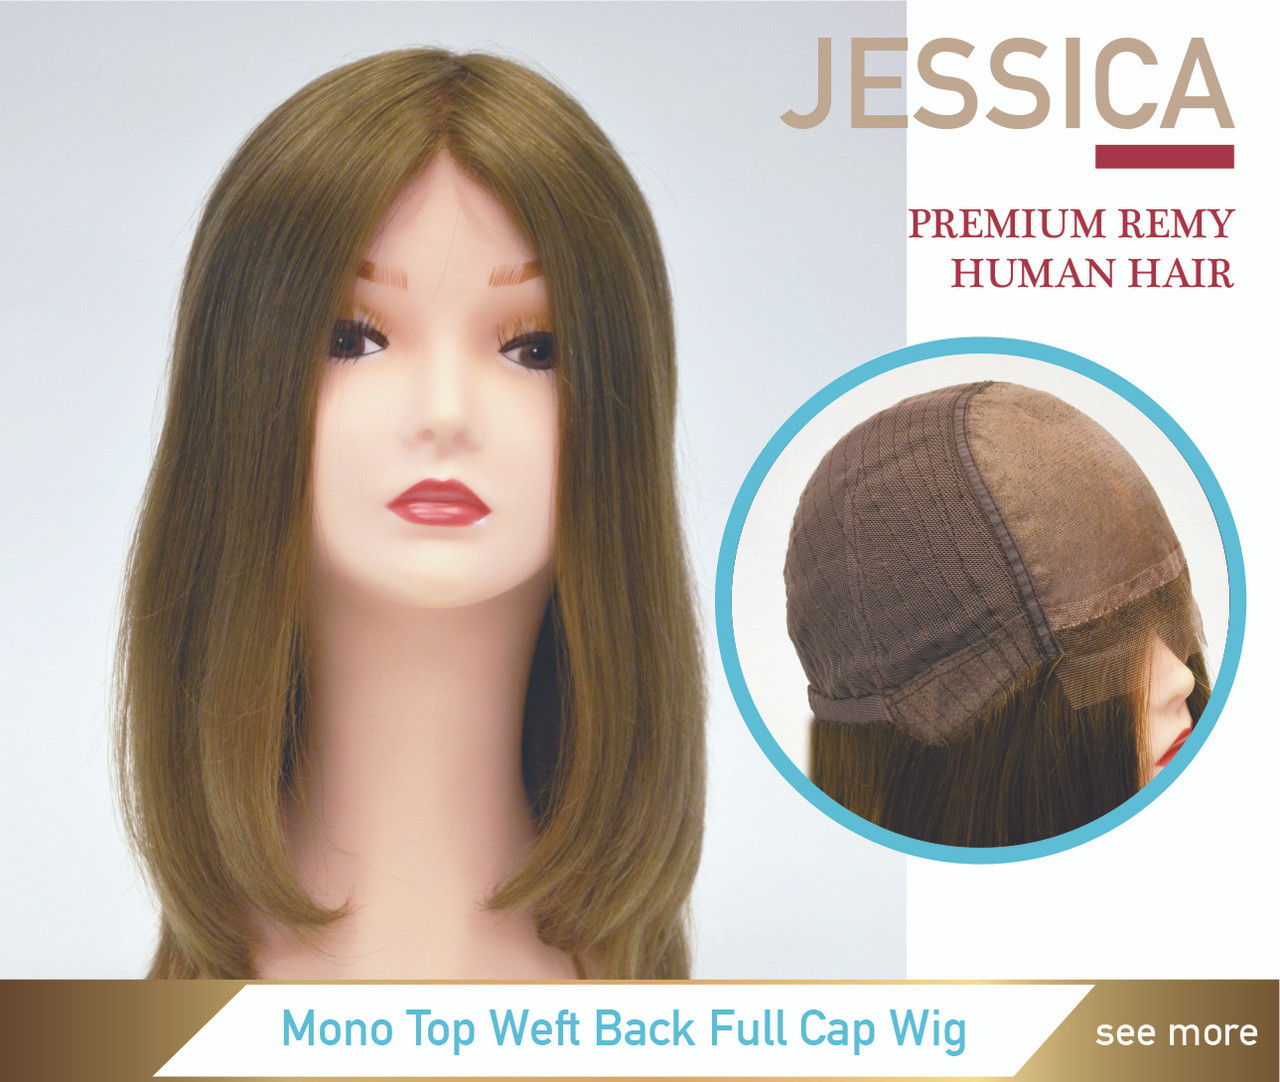 Jessica Premium Human Hair Mono Top Weft Back Women Wig - Superhairpieces.ca 5f2ee7a8a8